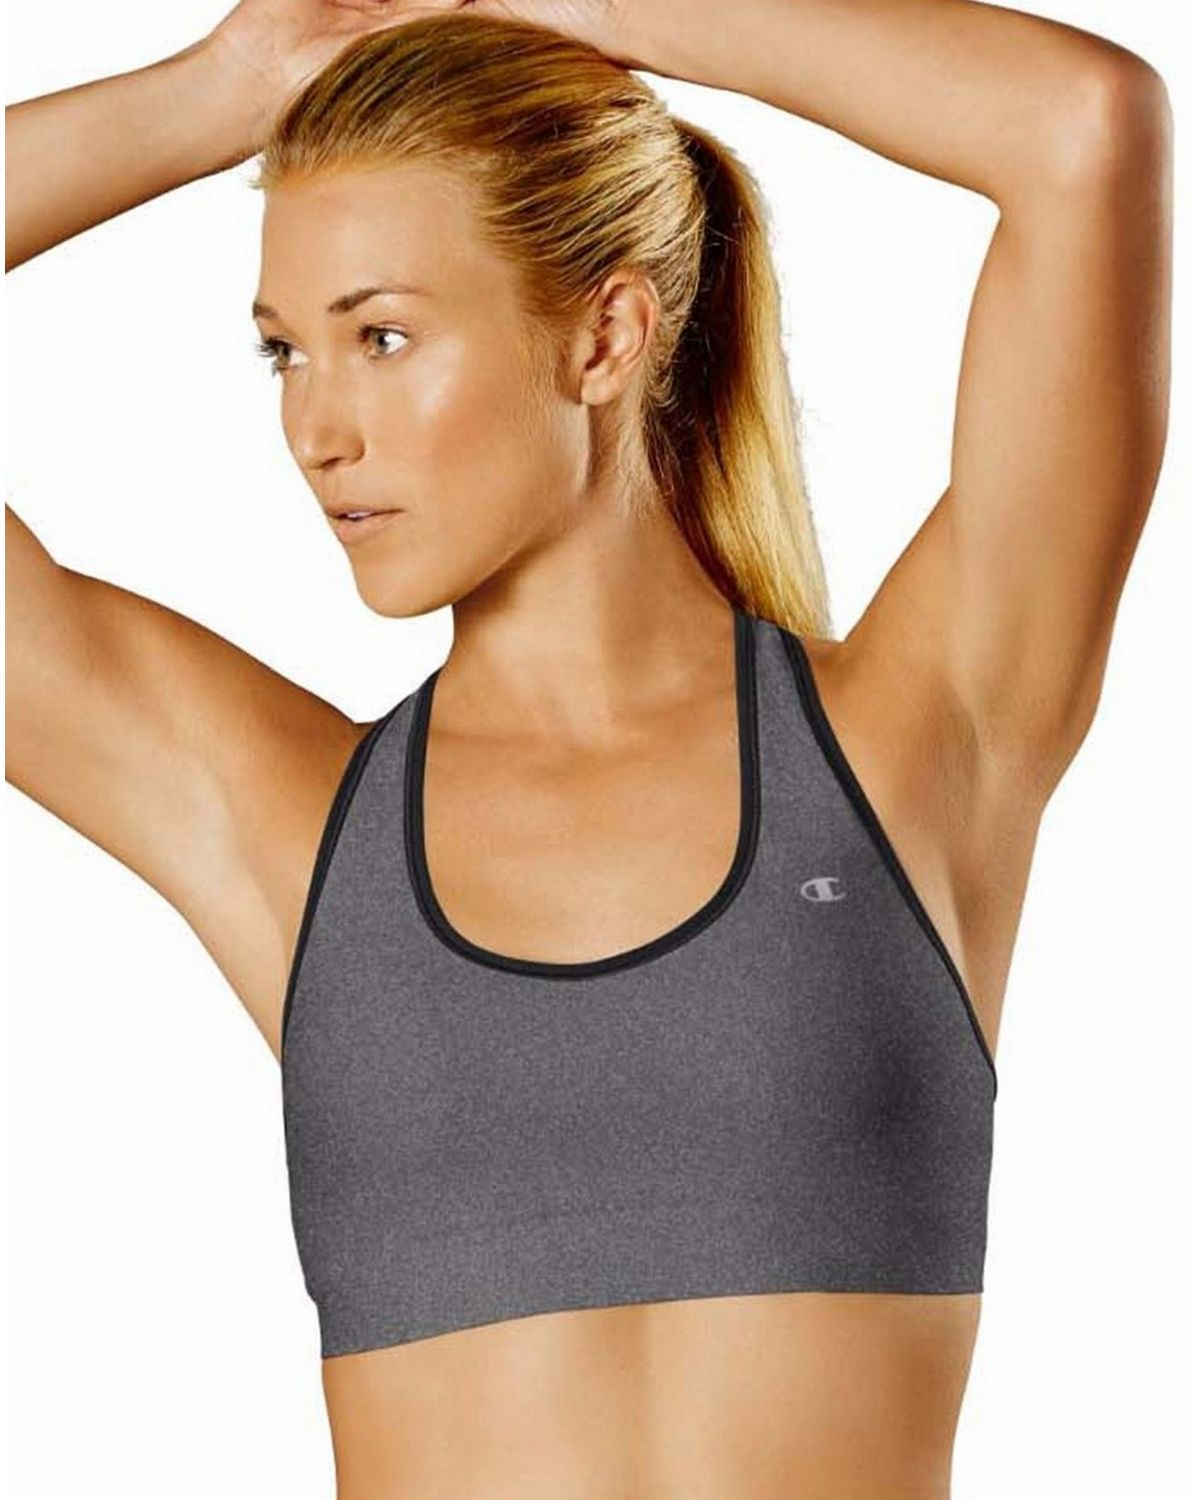 Champion B9504 Absolute Racerback Sports Bra - Granite Heather/Black - S B9504